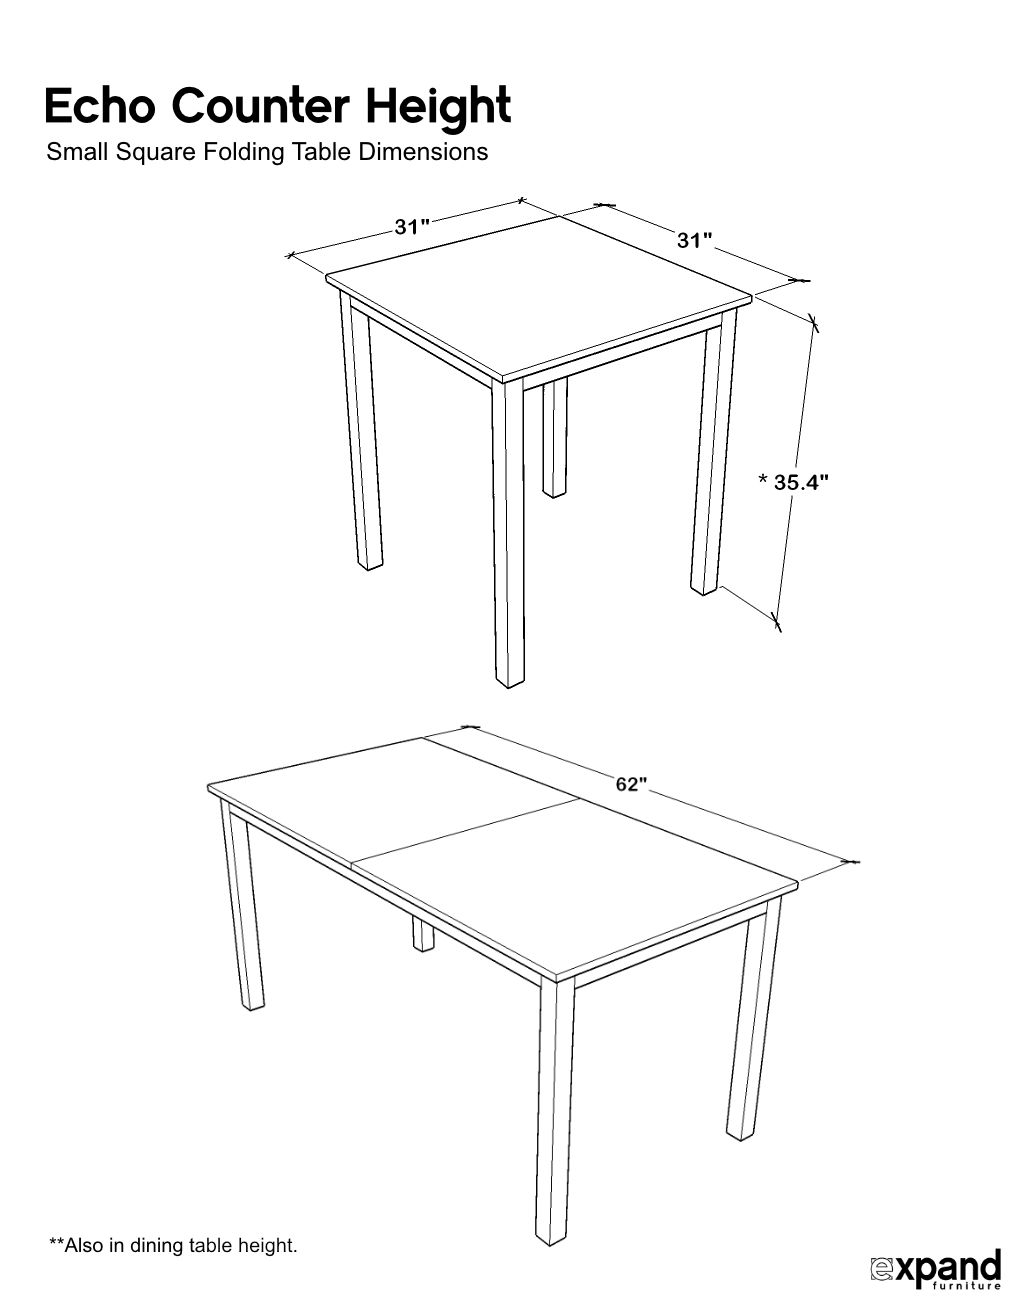 Picture of: Echo Counter Height Transforming Table Expand Furniture Folding Tables Smarter Wall Beds Space Savers